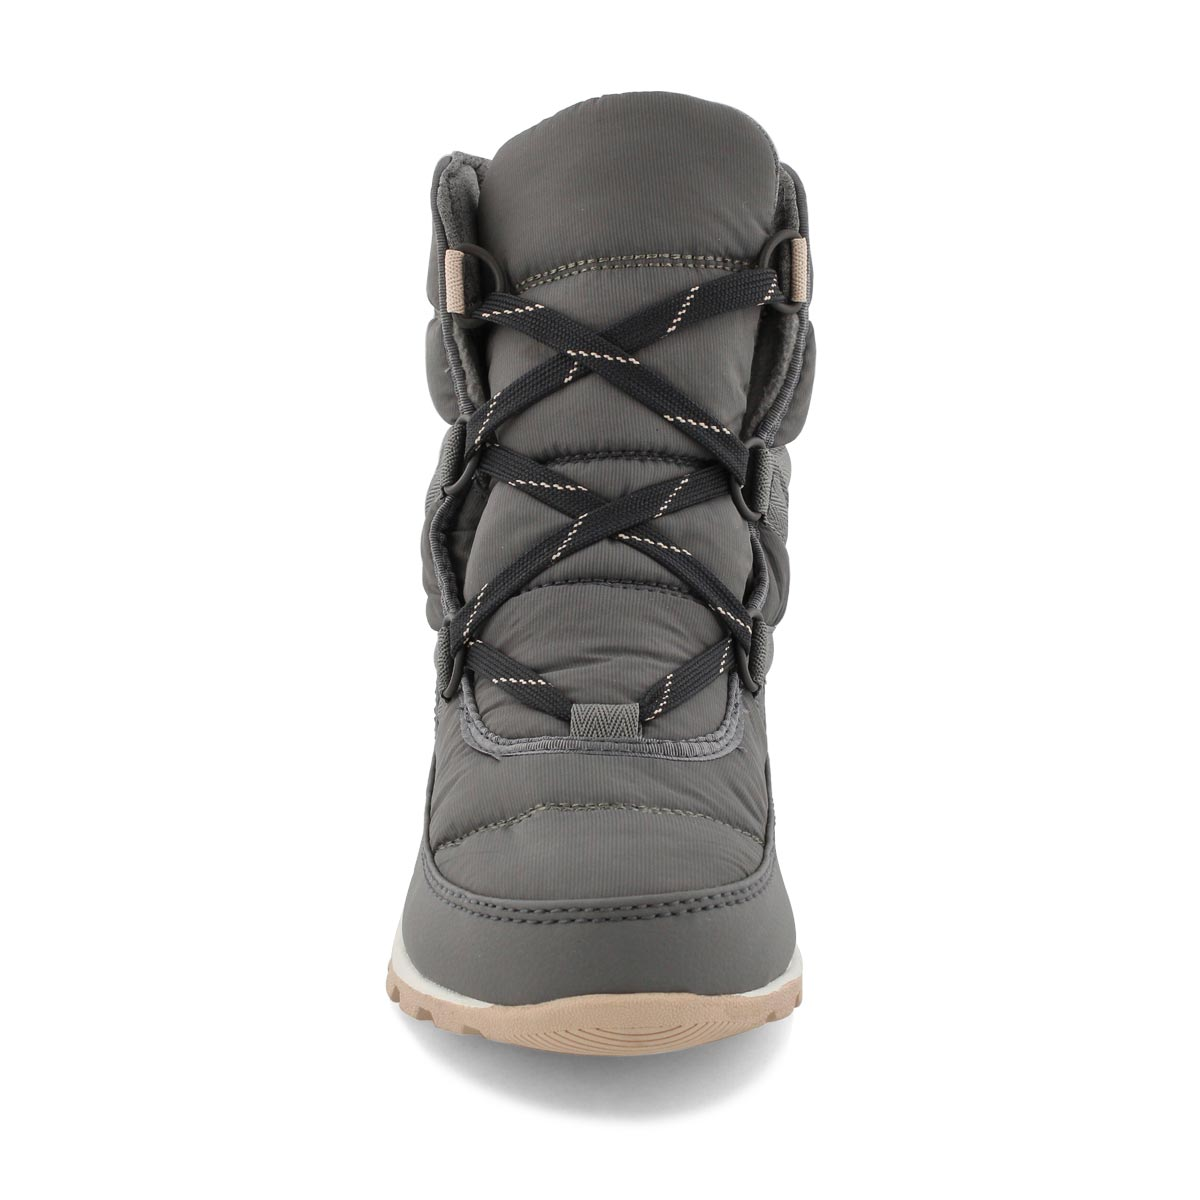 Lds WhitneyShortLace quarry wp wntr boot